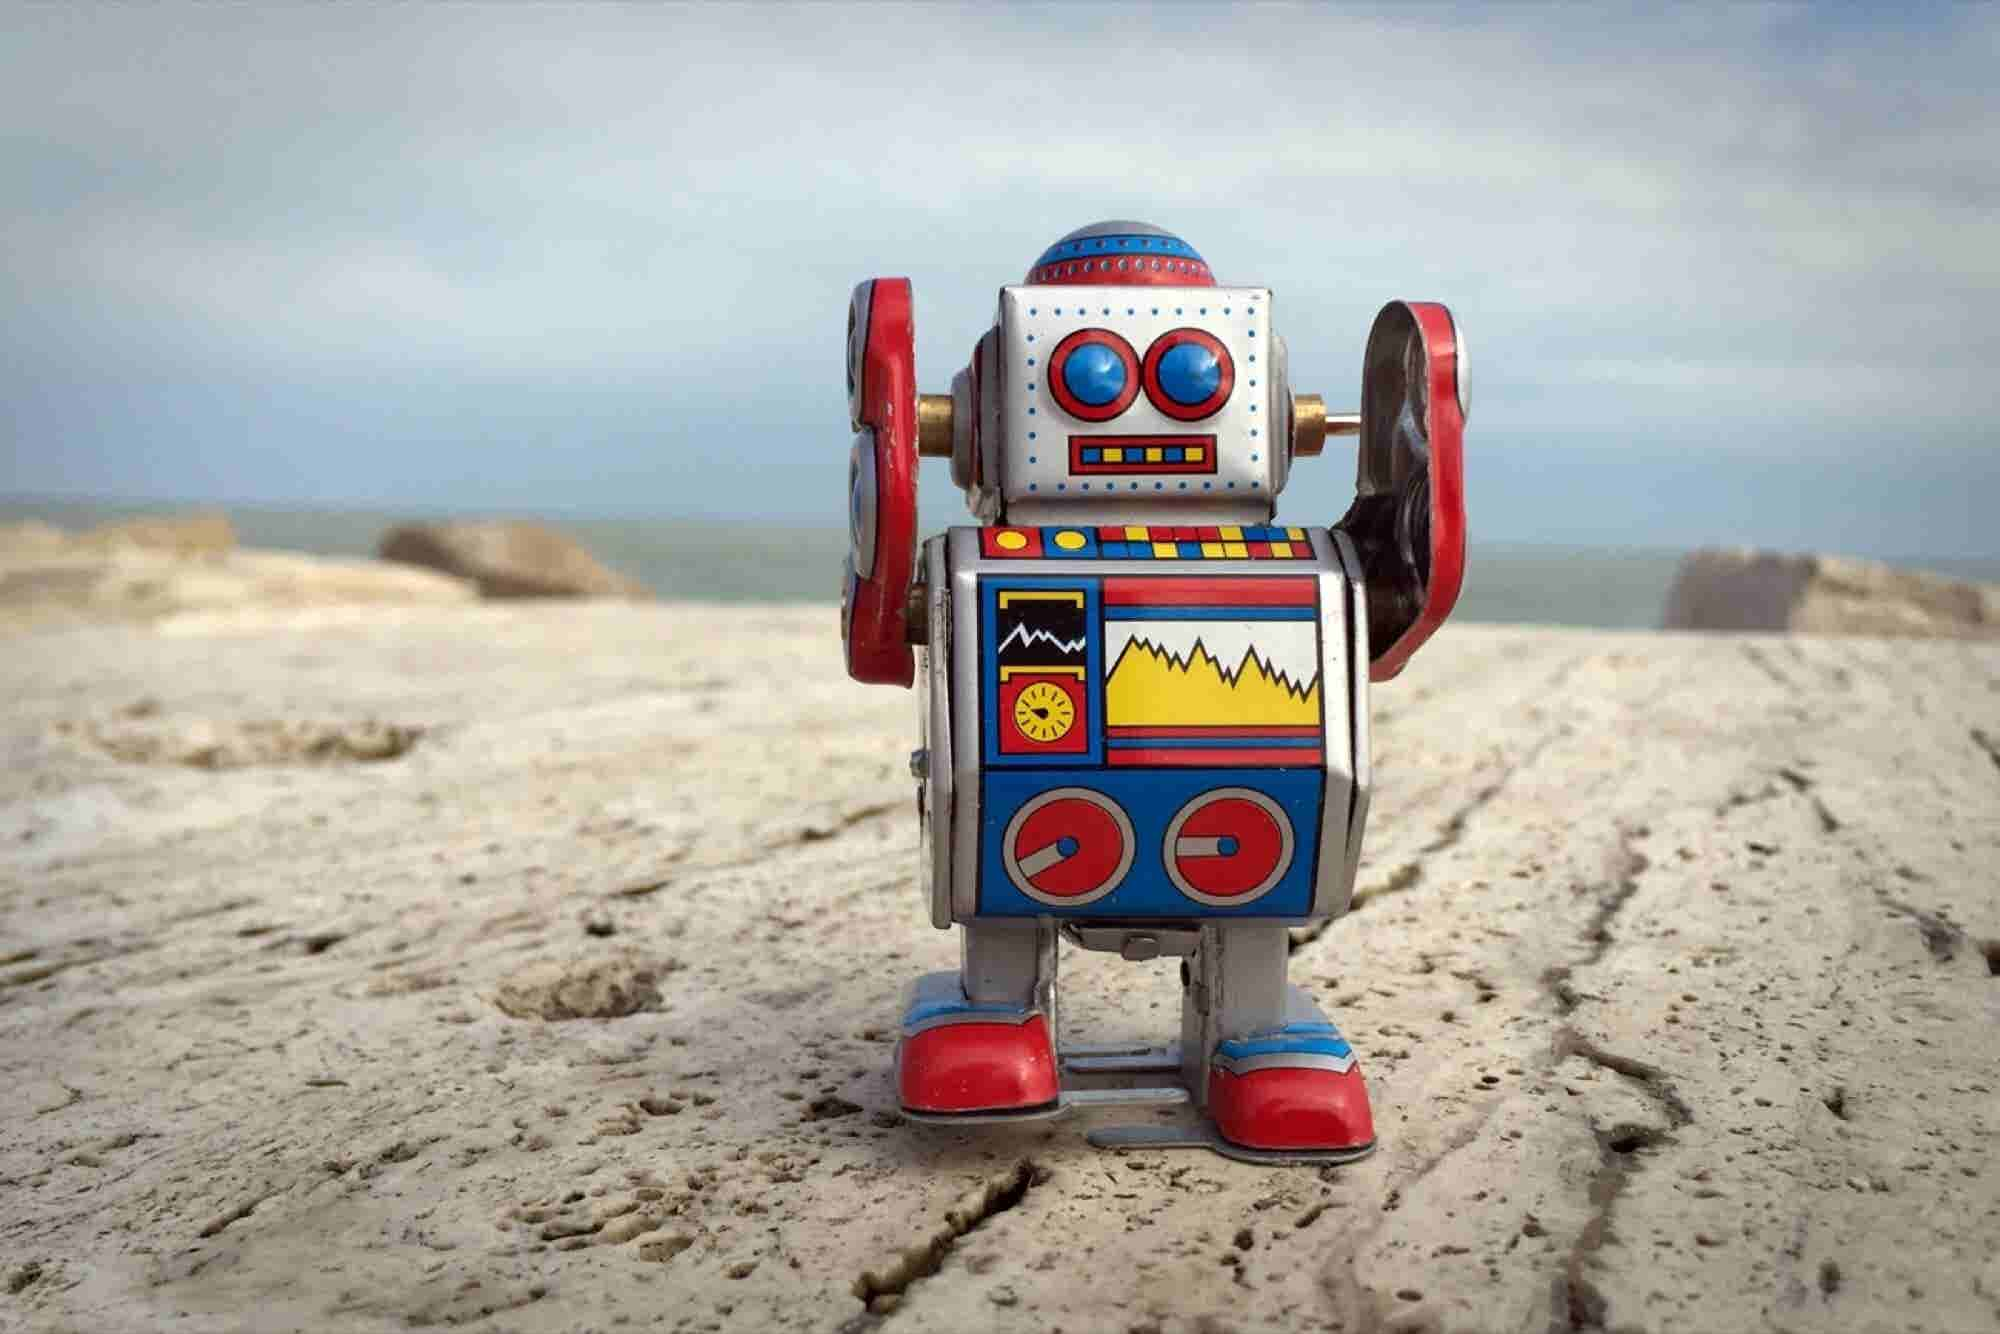 Apple's Wozniak: We're All Going to Be Robots' Pets One Day, and That's OK